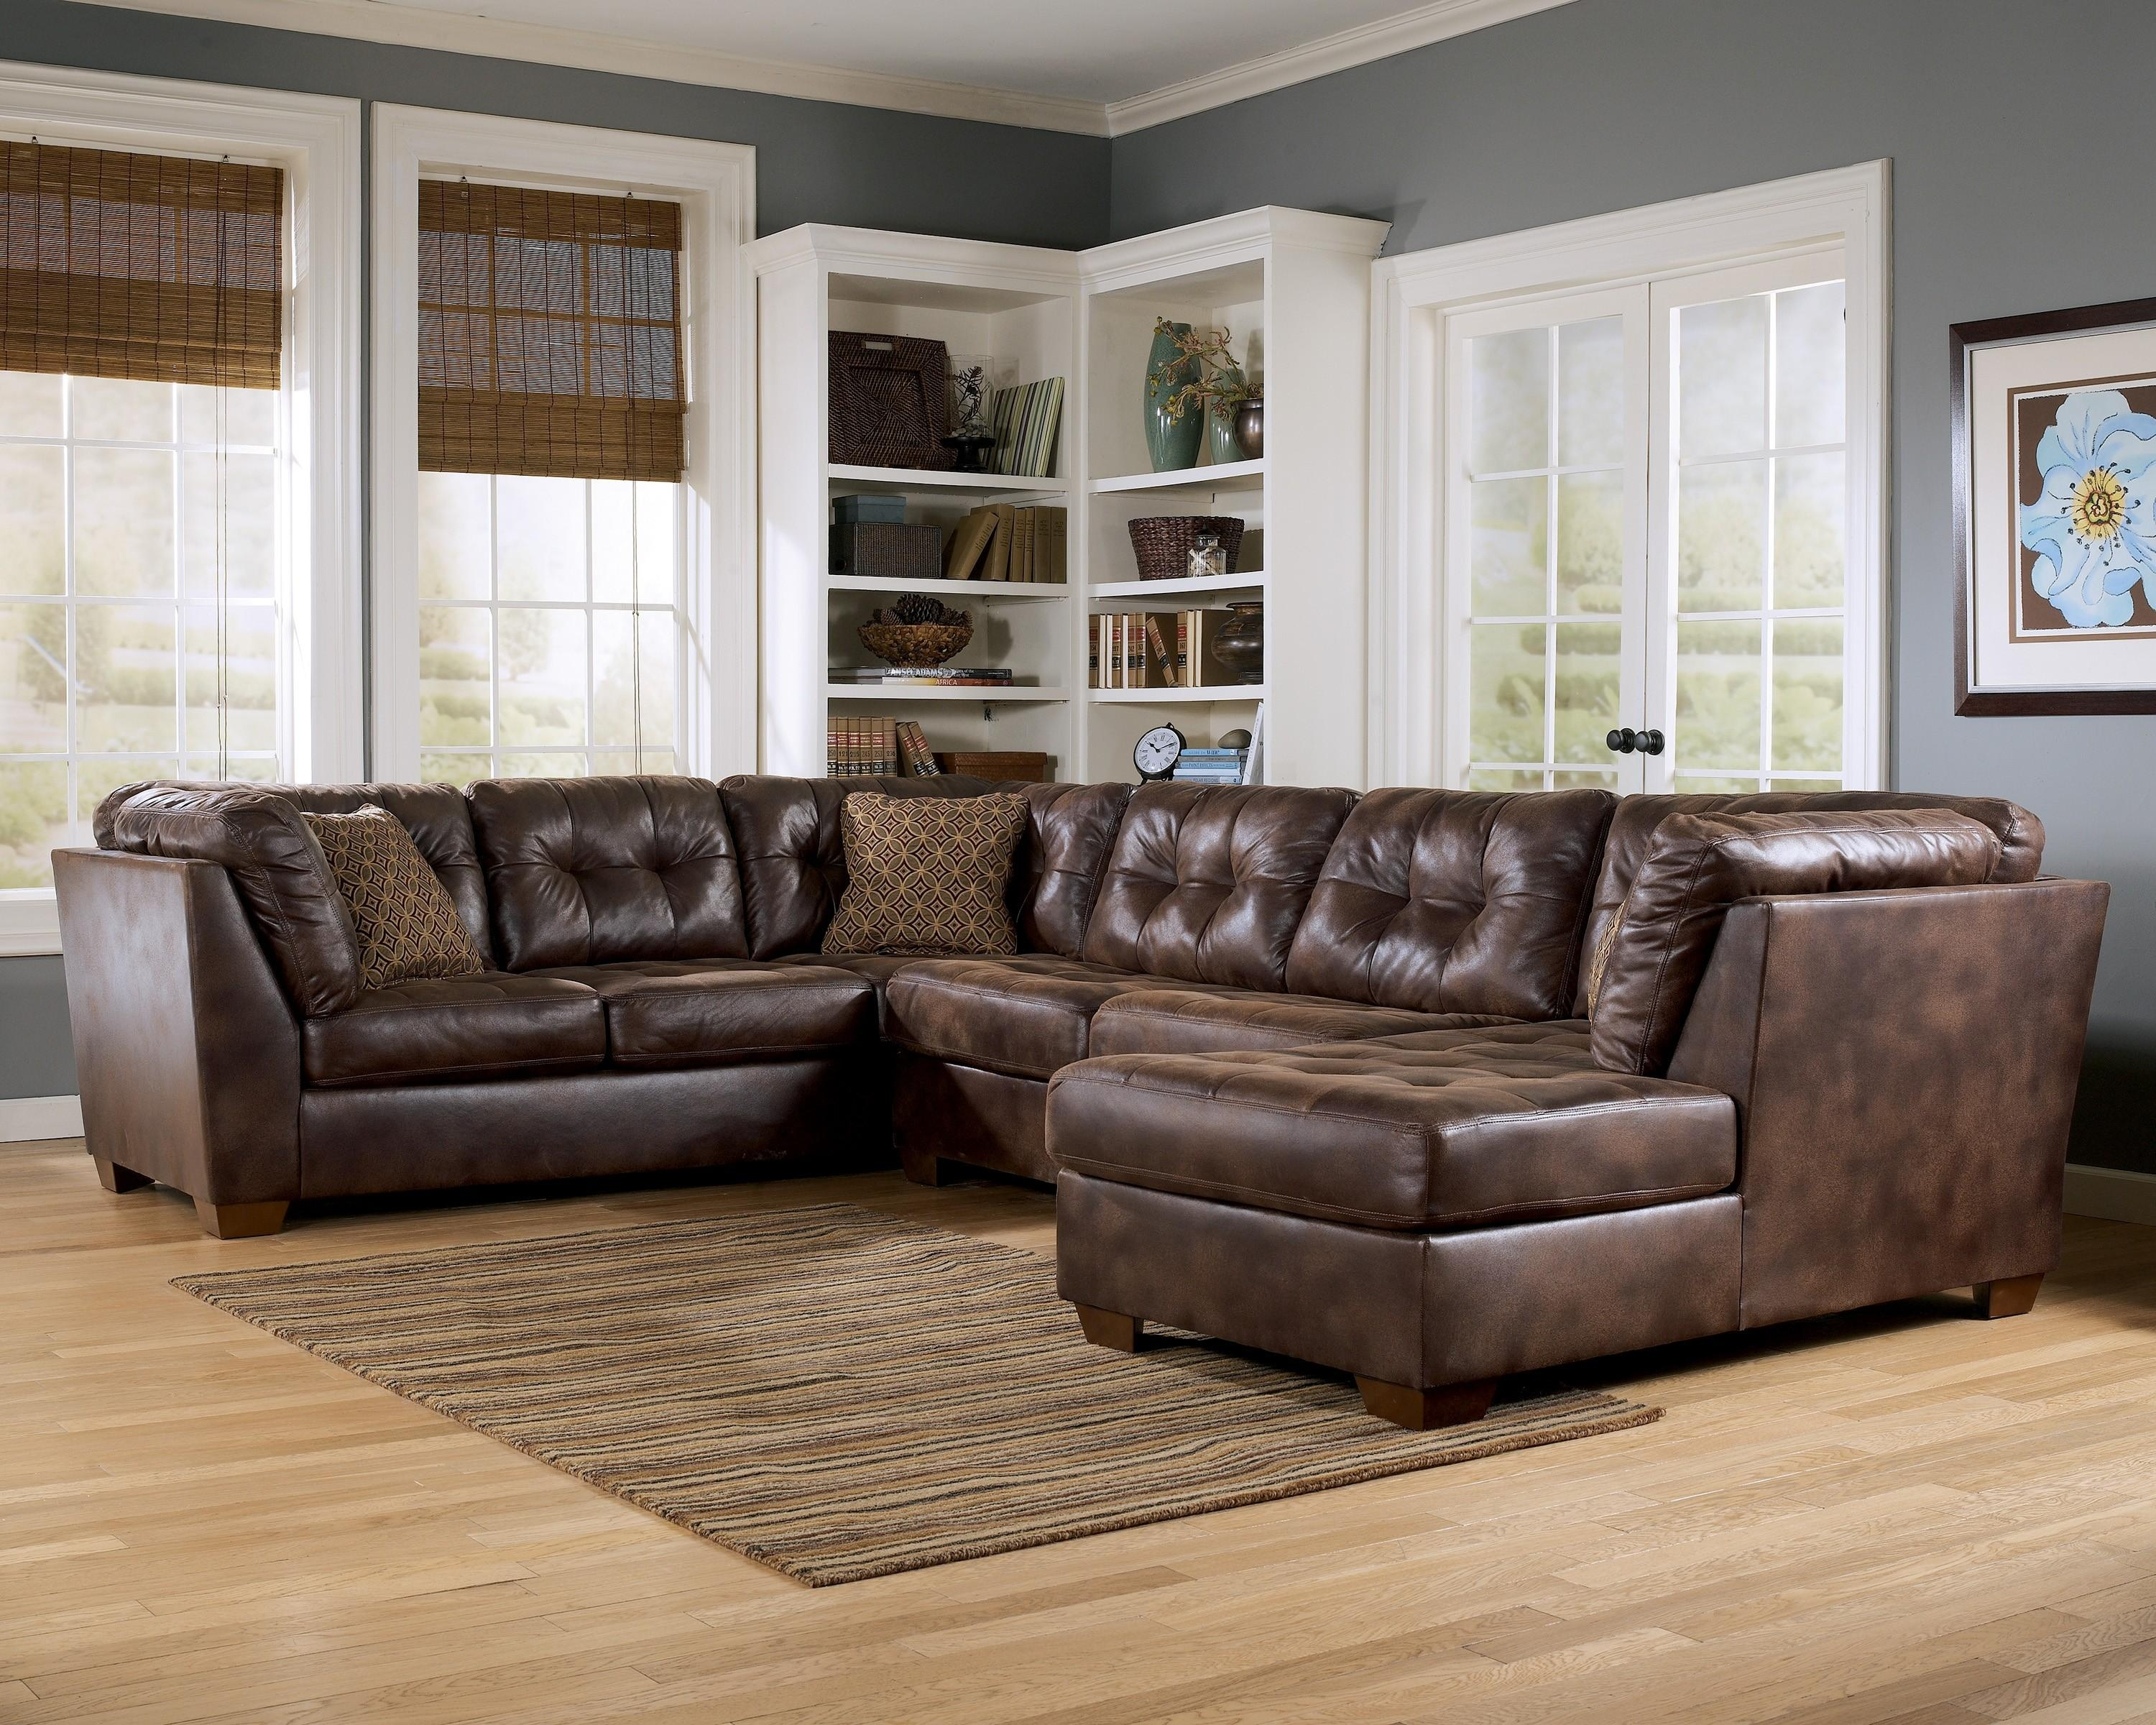 Sofas Center : Sectional Sofasth Recliners And Cup Holders Stephen Pertaining To Giant Sofas (Image 20 of 20)